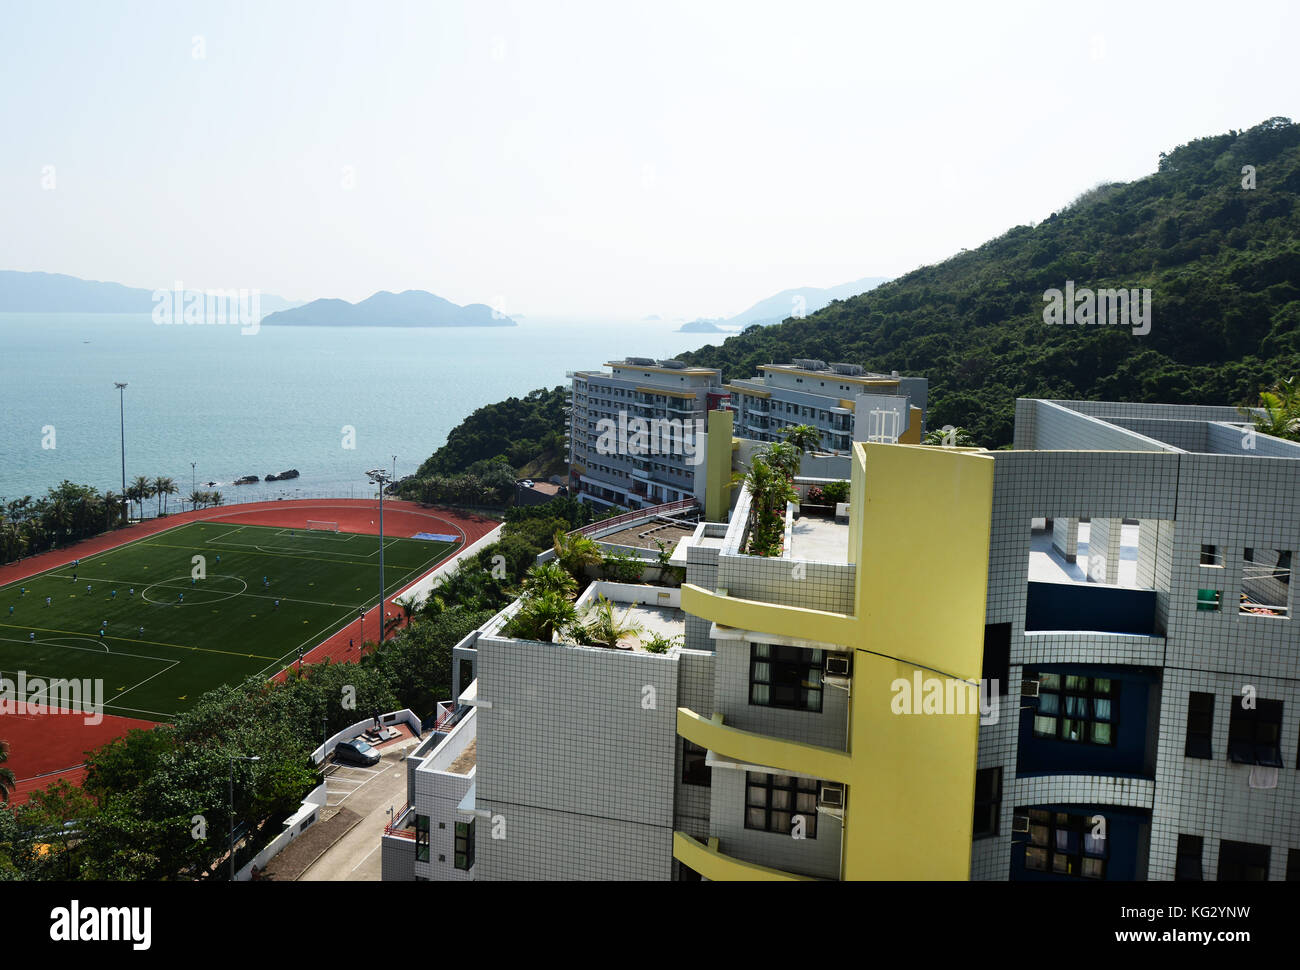 The Hong Kong University of Science and Technology in Clear water bay in Hong Kong. - Stock Image